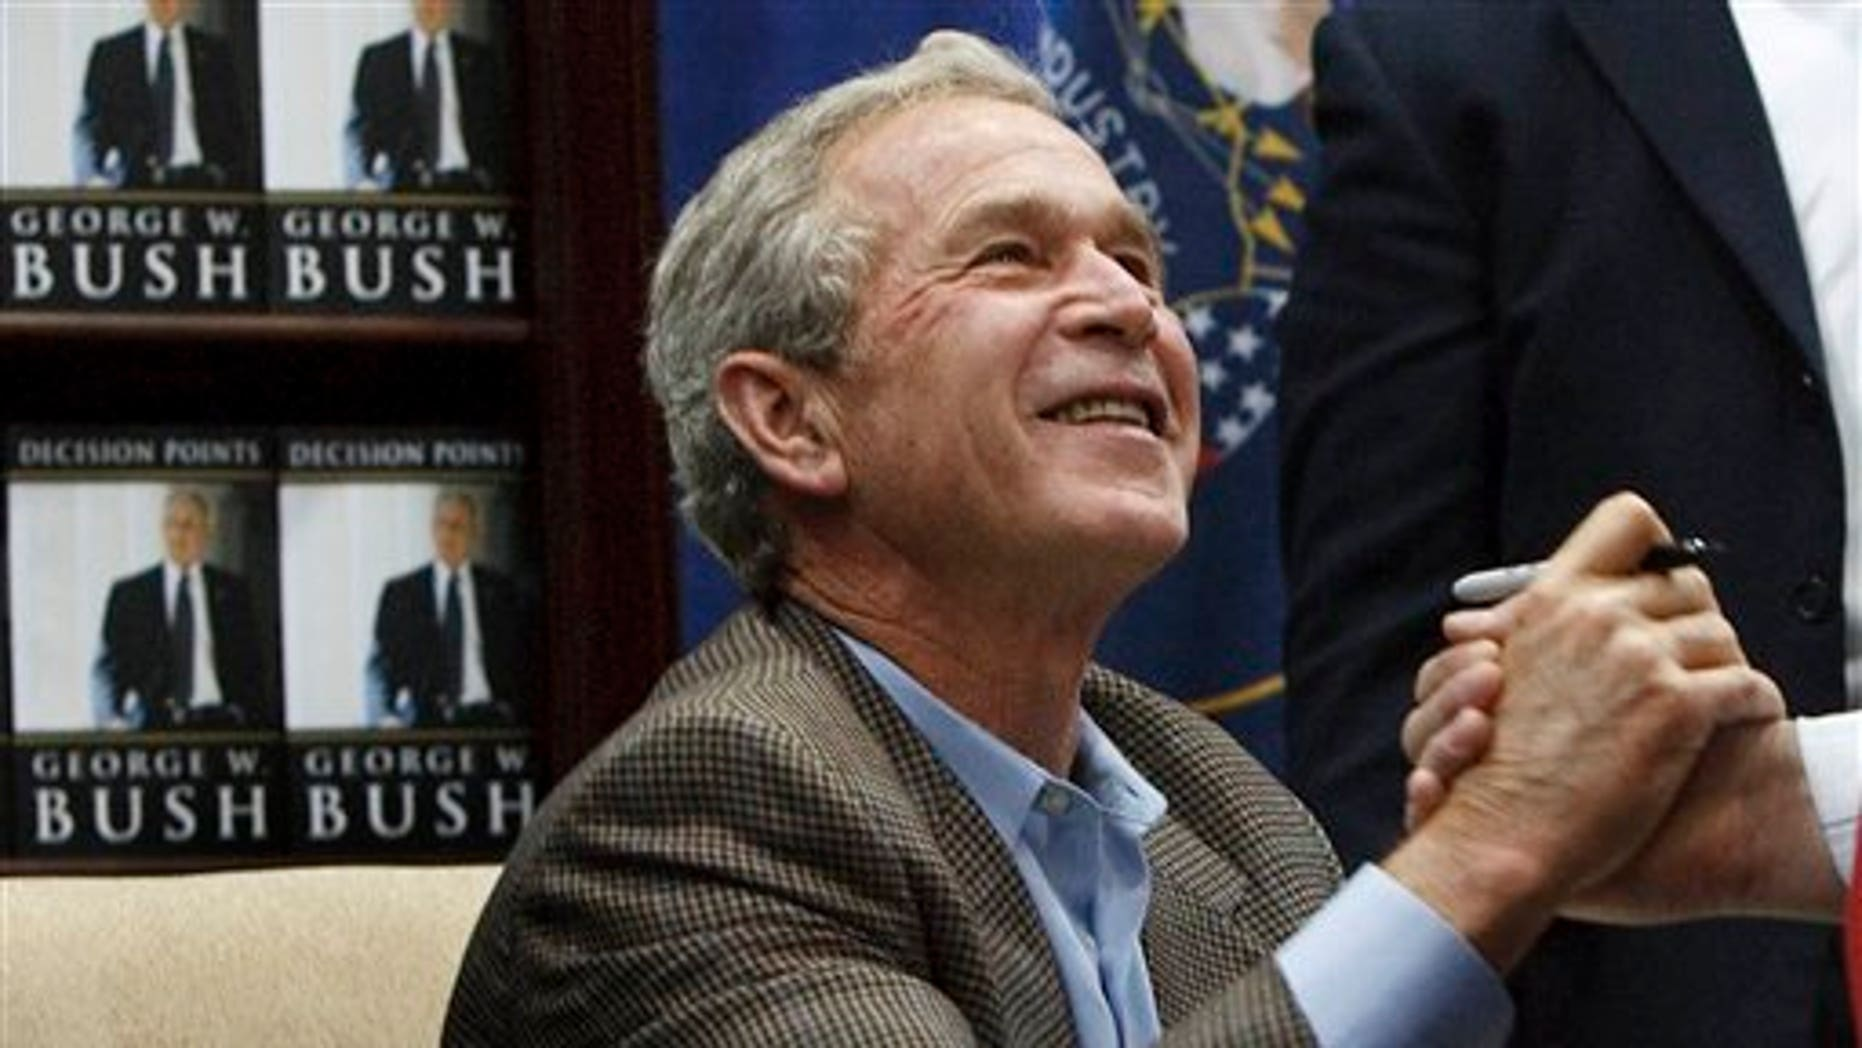 """Former President George W. Bush shakes hands with a man after autographing a copy of his memoir Friday, Nov. 19, 2010, in Sandy, Utah. More than 1,000 people were lined up waiting for an autographed copy of the former president's memoir, """"Decision Points."""""""